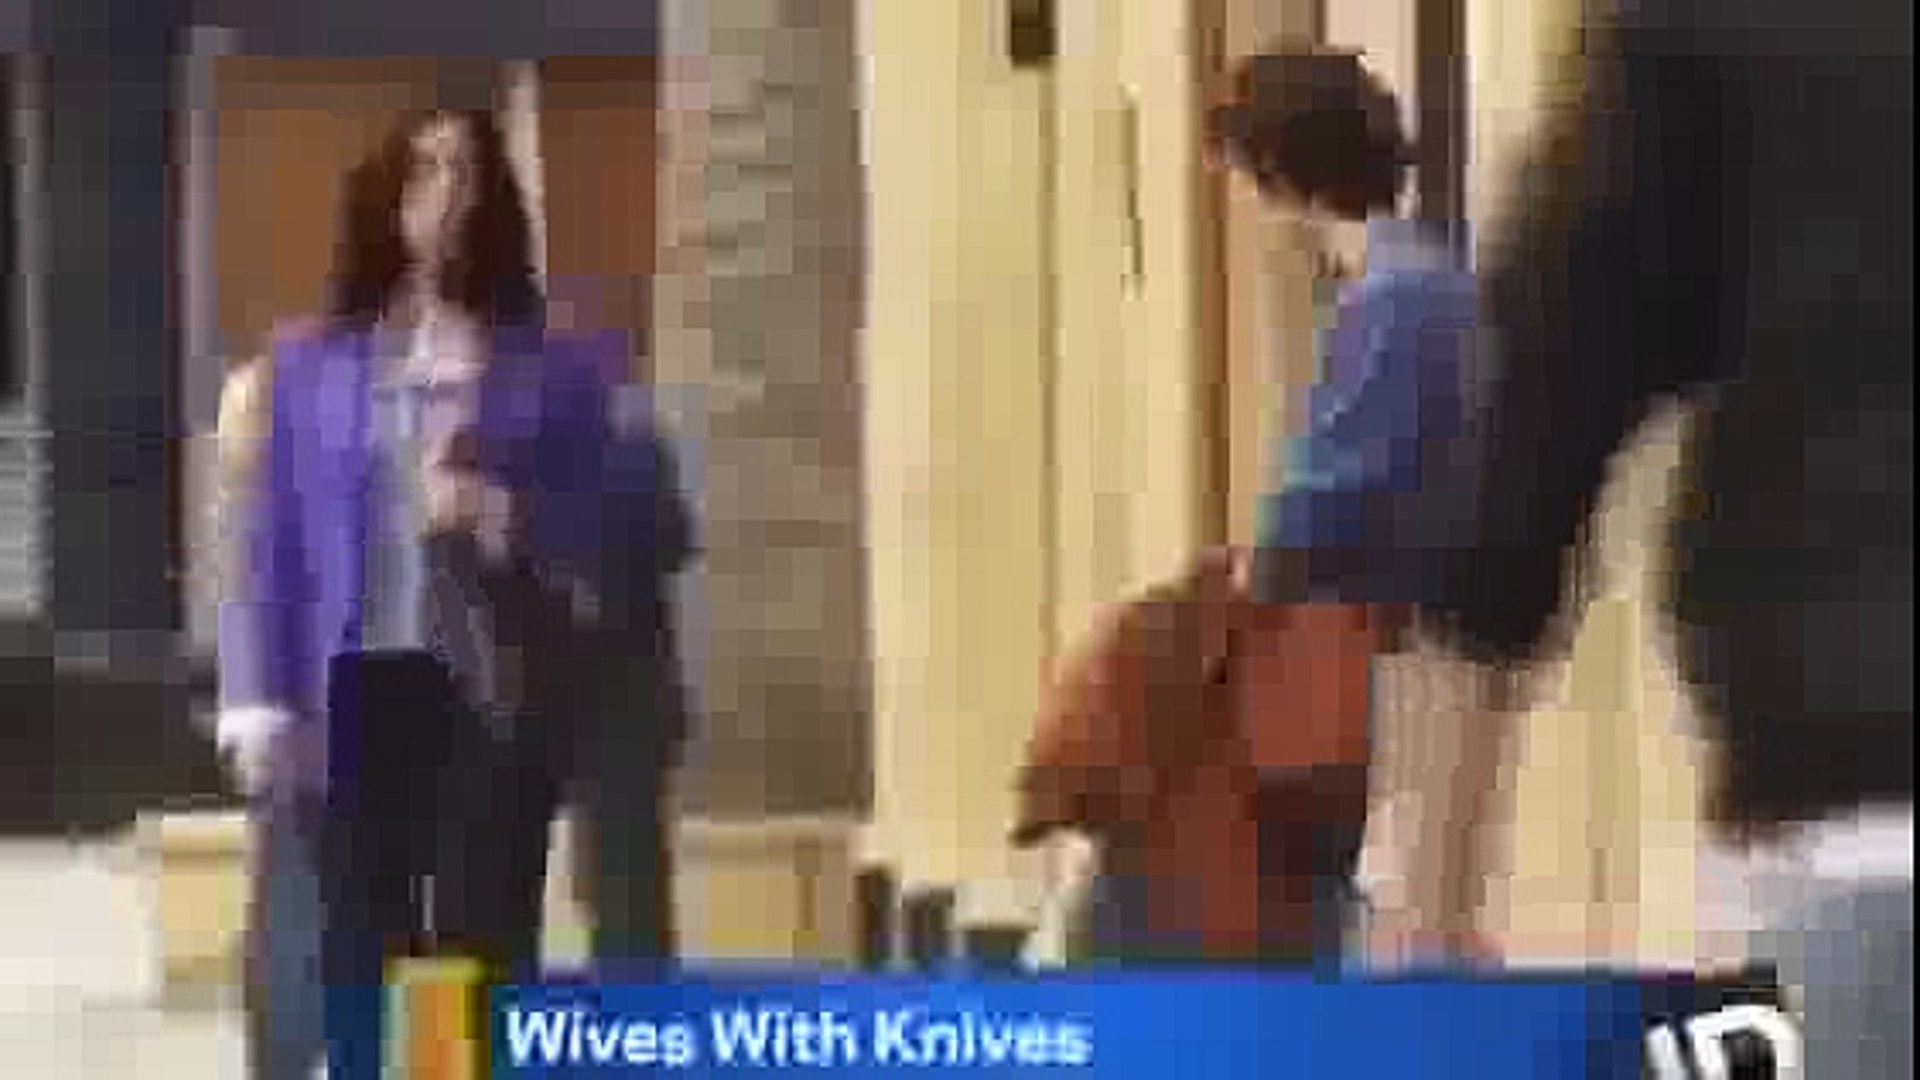 Lonely And Lethal Wives with knives Serial killer Documentary